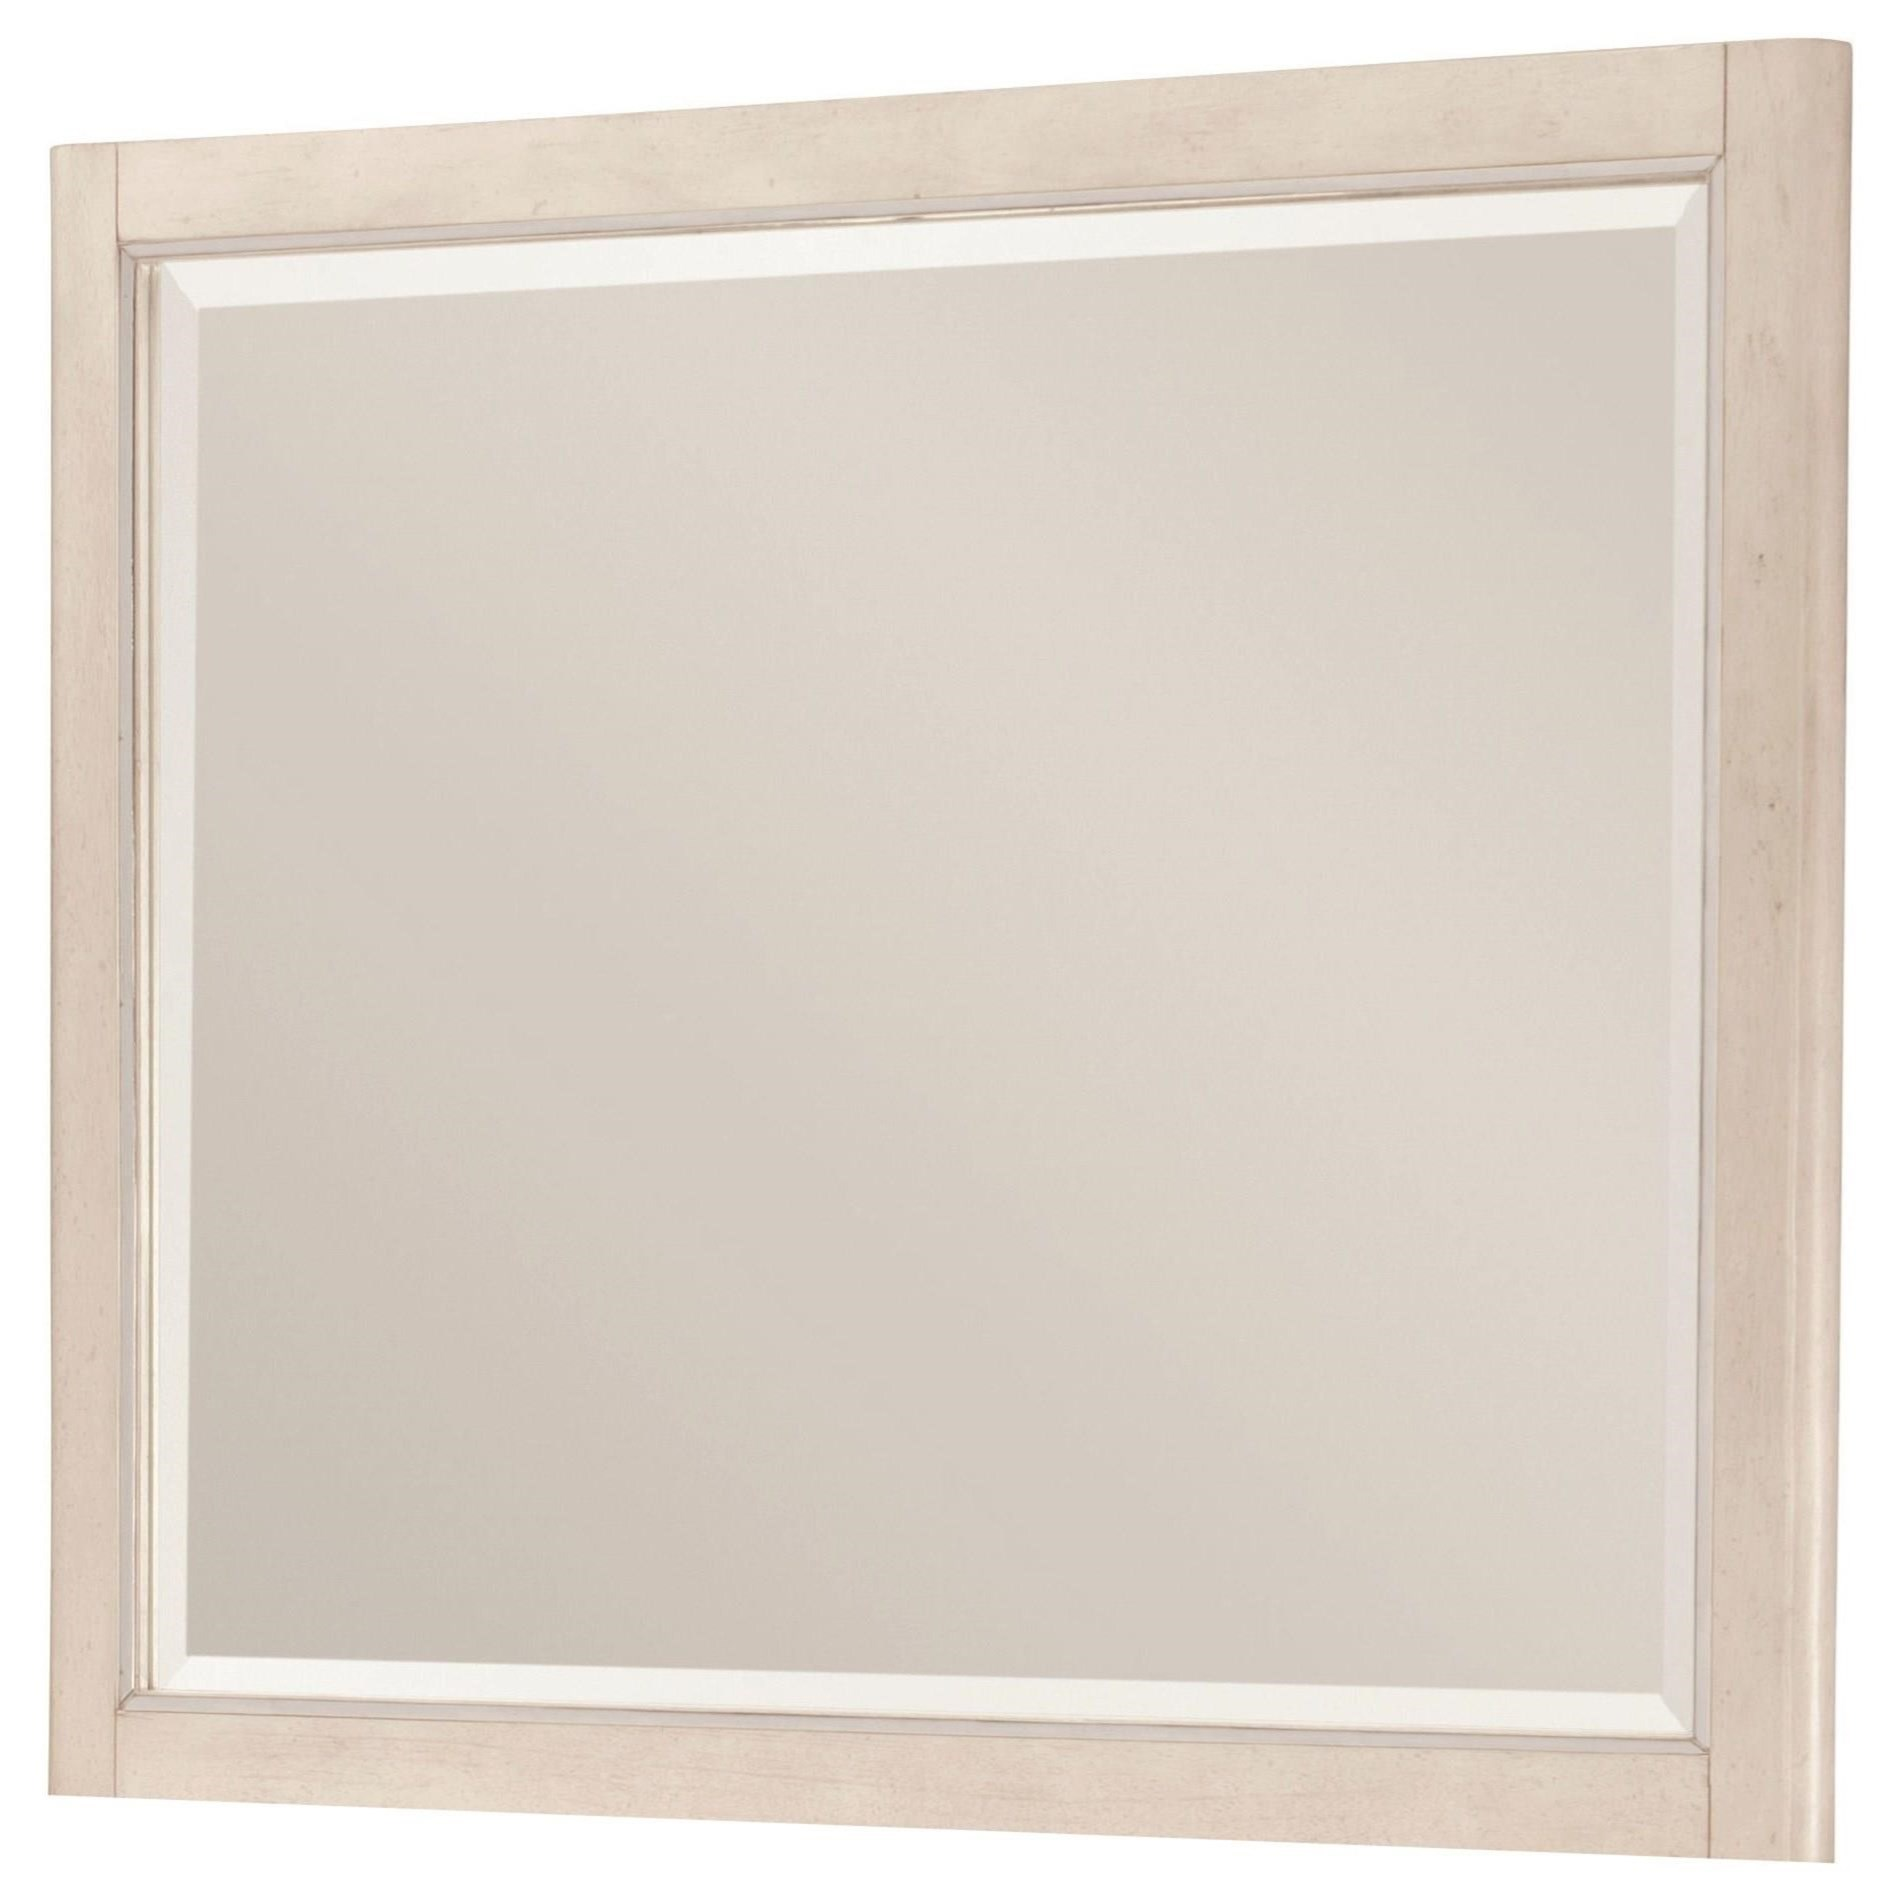 11 West Mirror  by Legacy Classic at Lagniappe Home Store